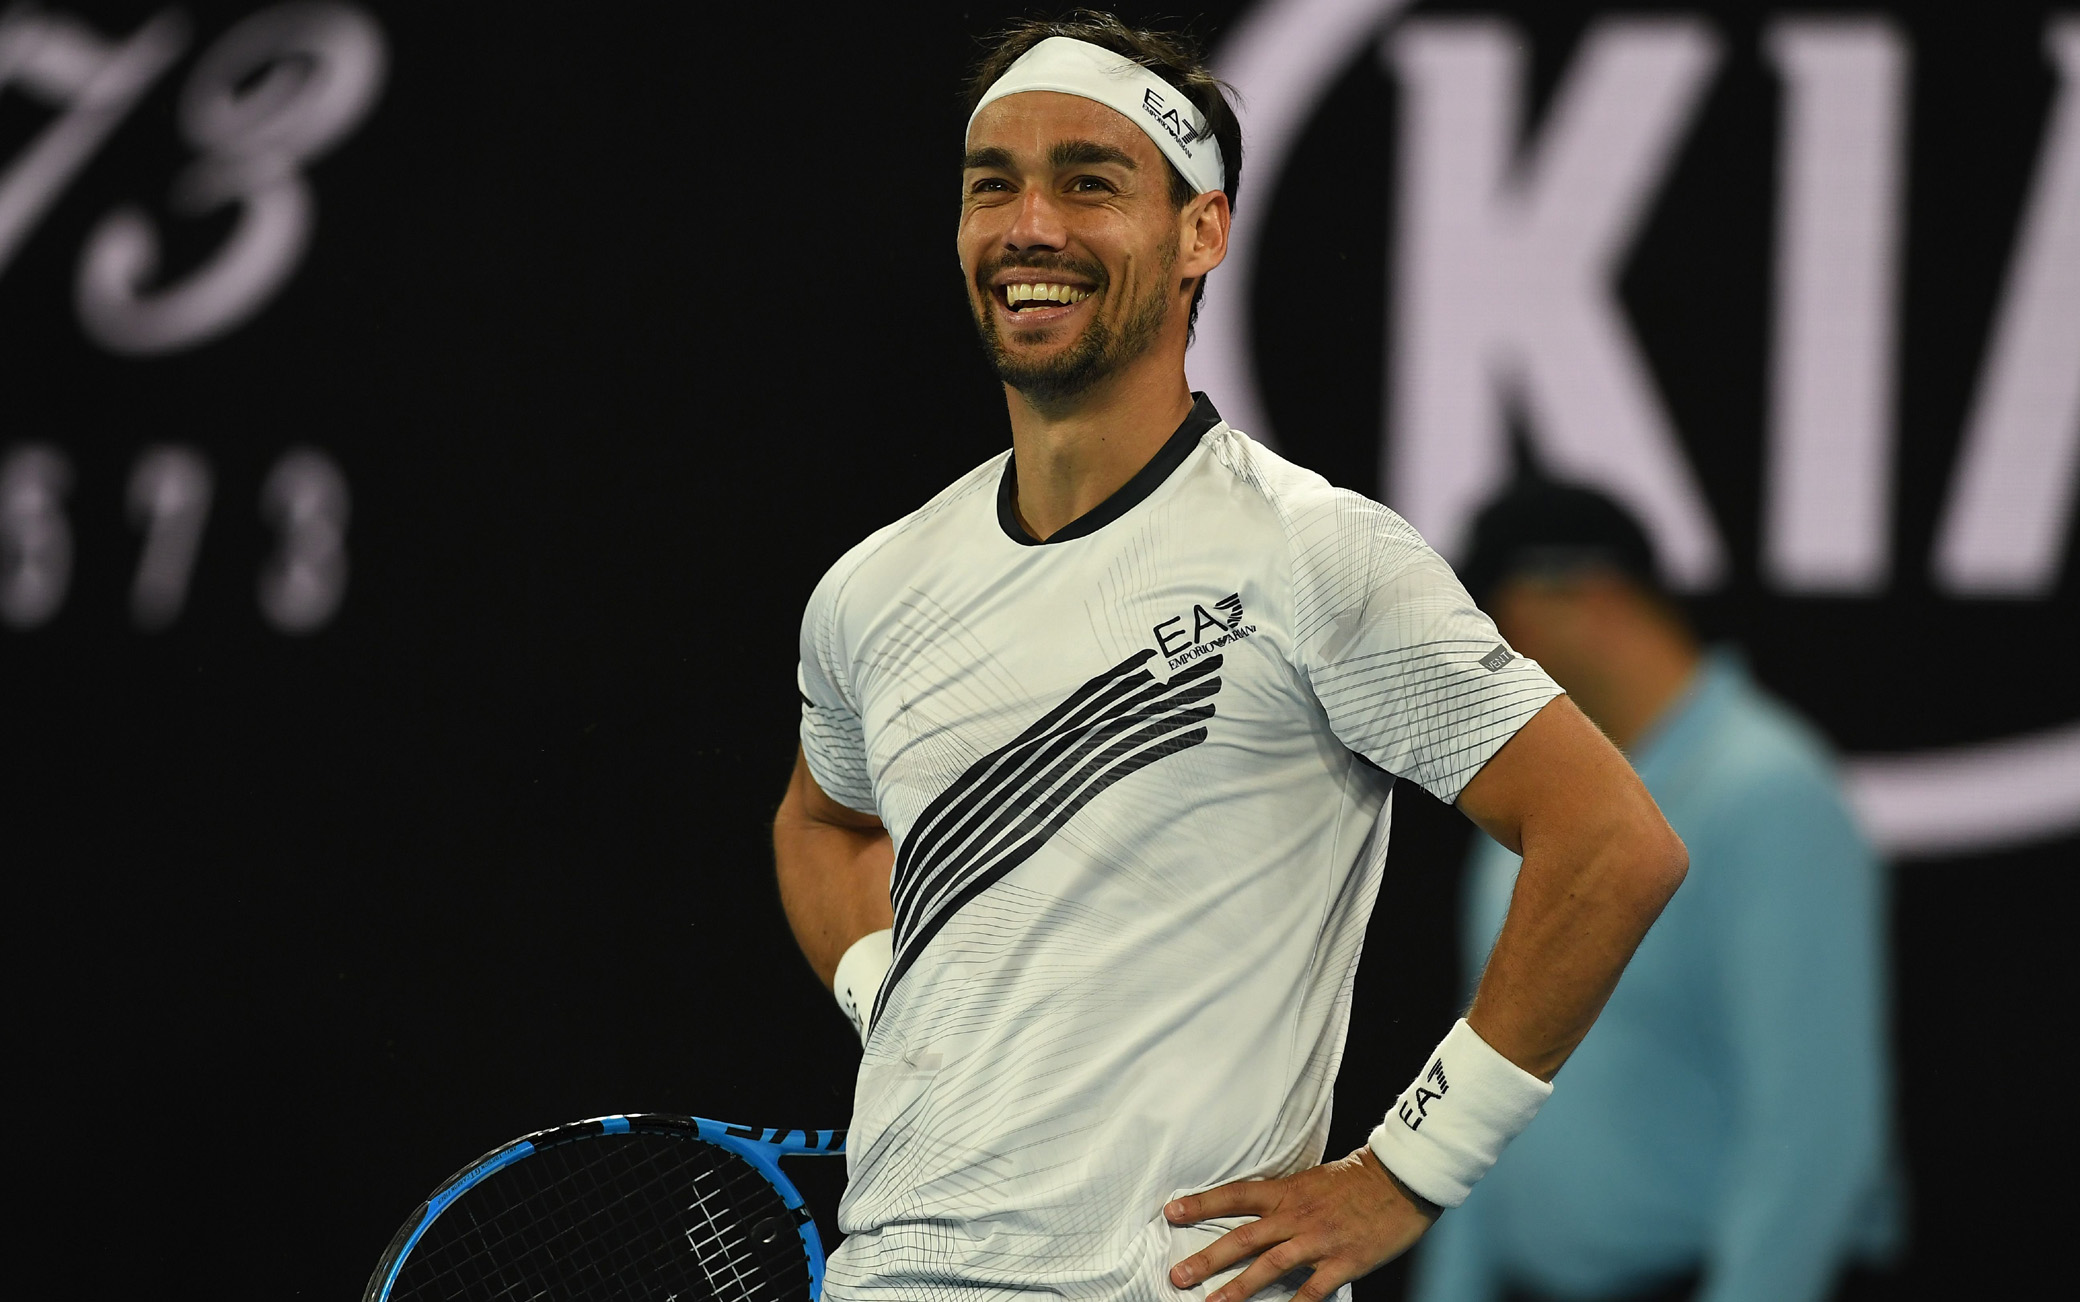 Italy's Fabio Fognini reacts after a point against Argentina's Guido Pella during their men's singles match on day five of the Australian Open tennis tournament in Melbourne on January 24, 2020. (Photo by Greg Wood / AFP) / IMAGE RESTRICTED TO EDITORIAL USE - STRICTLY NO COMMERCIAL USE (Photo by GREG WOOD/AFP via Getty Images)